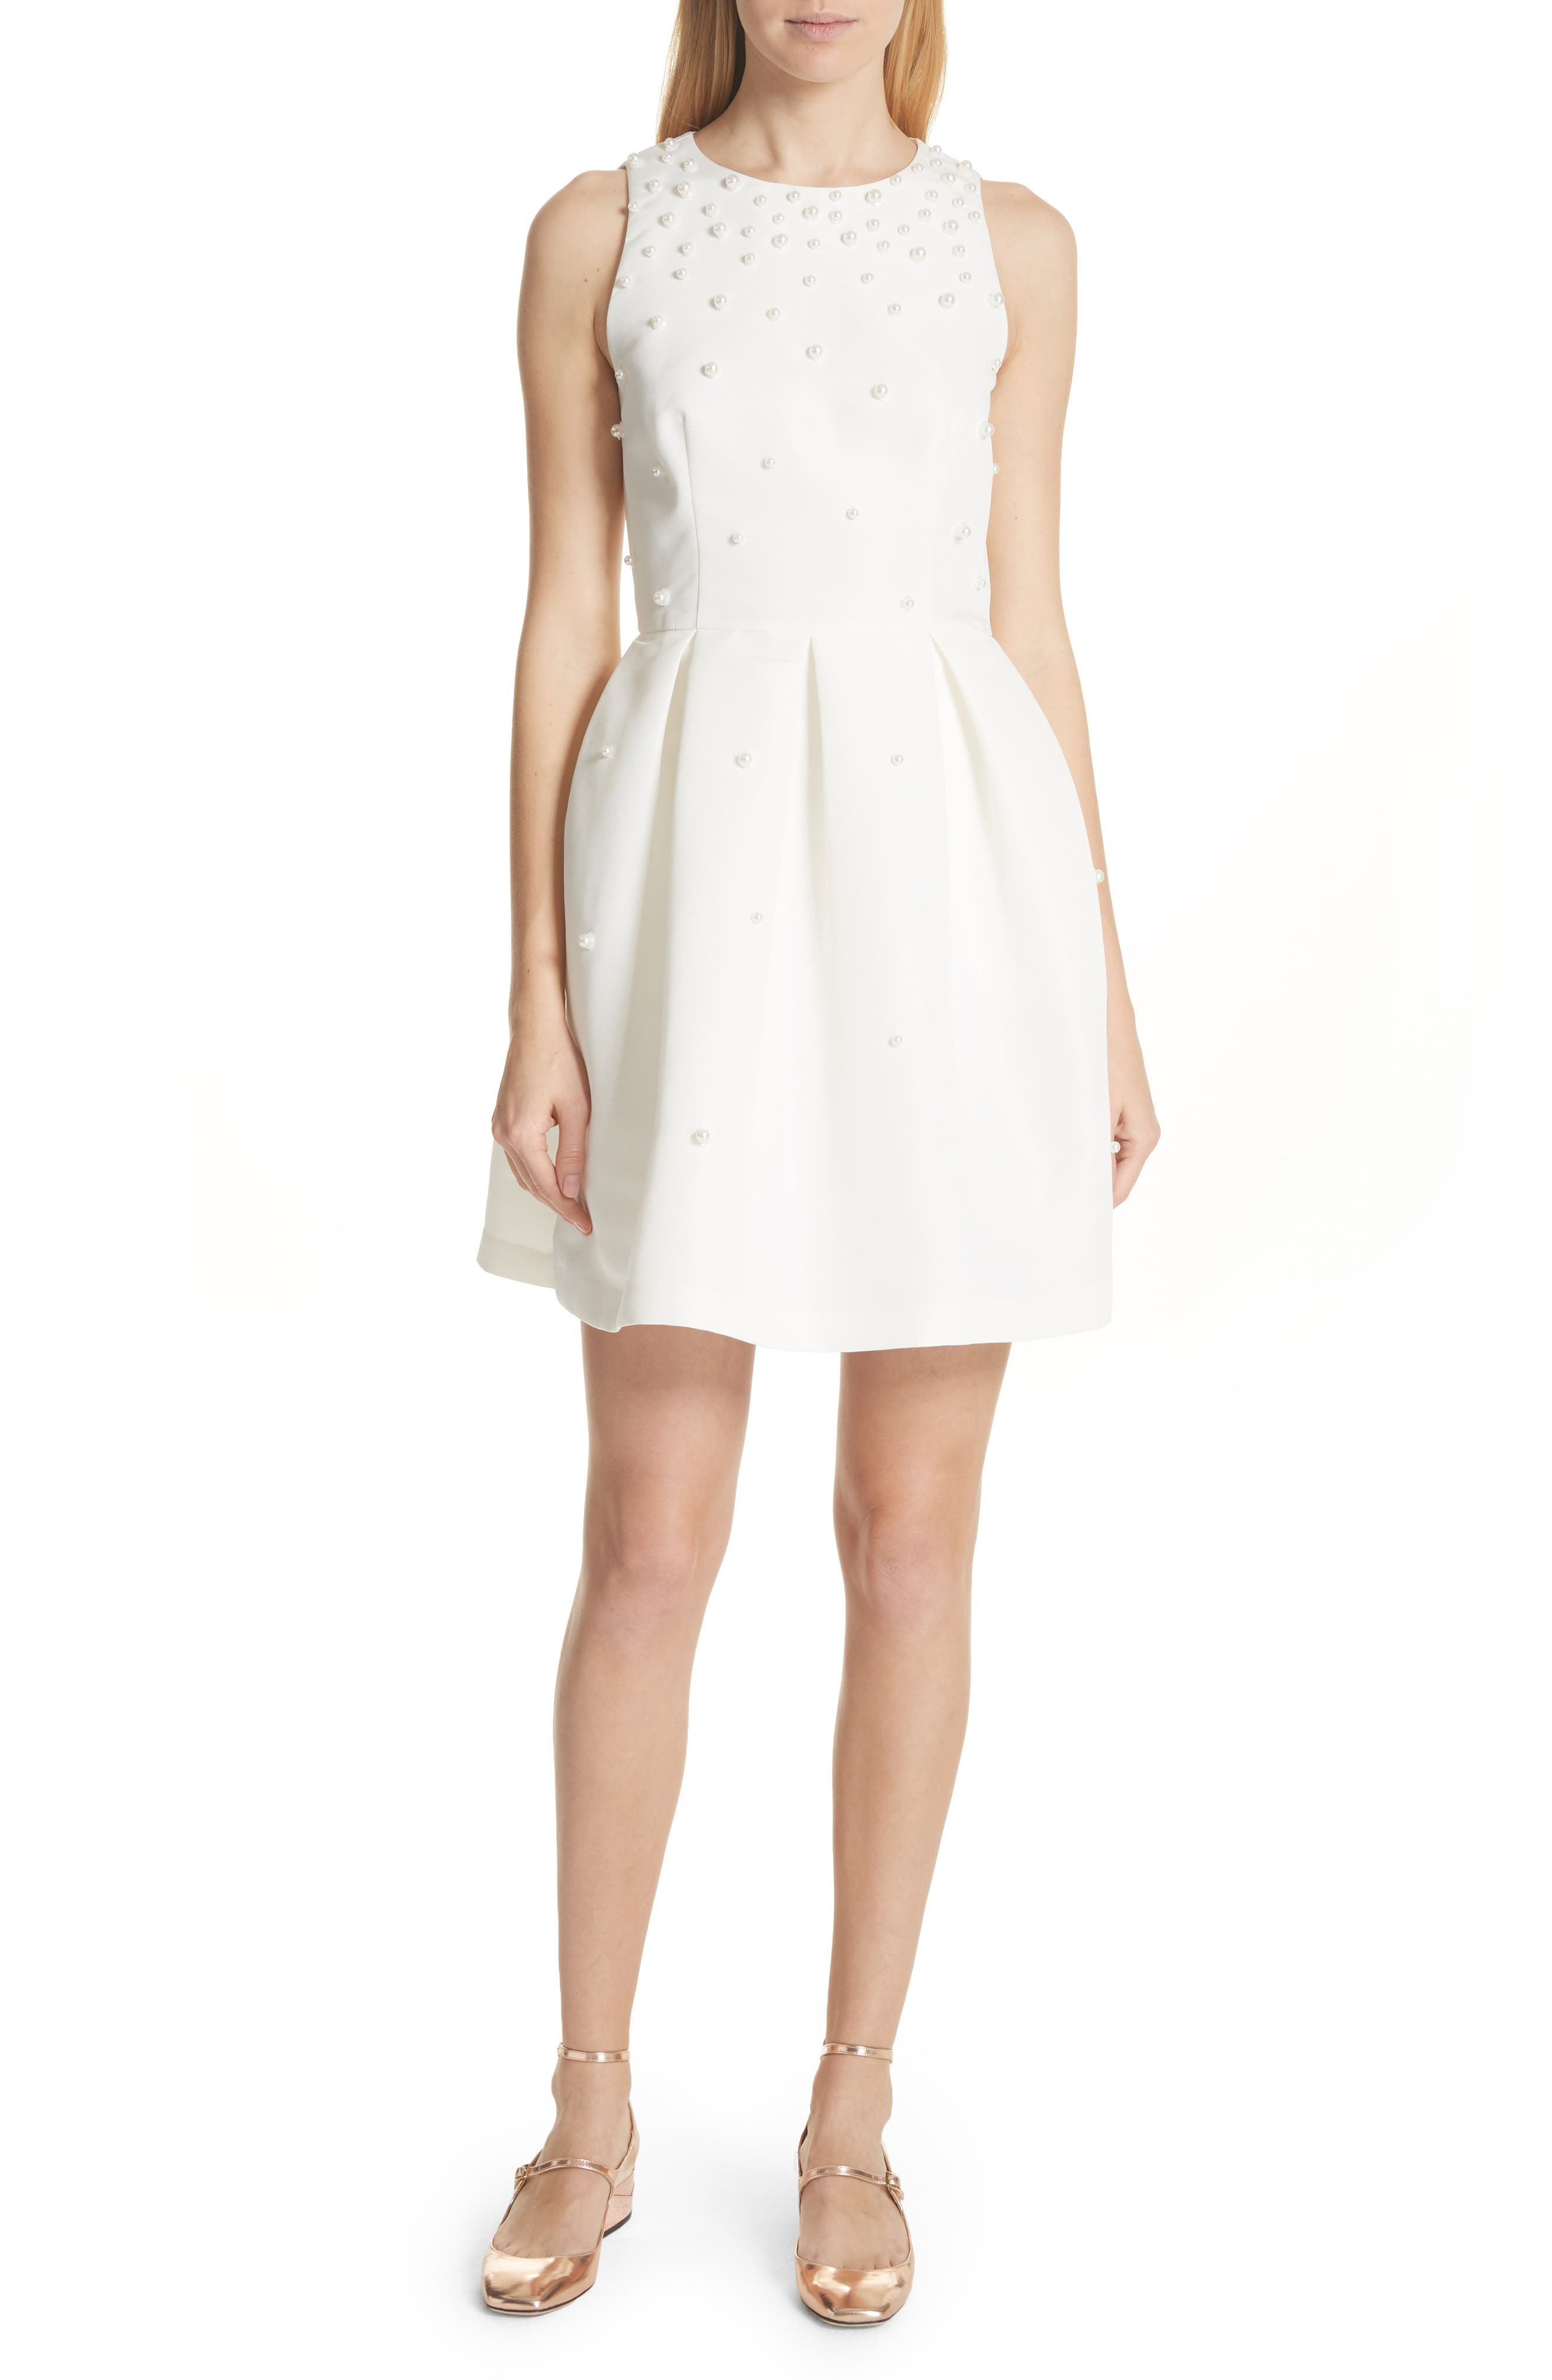 bff6320026068 ... Ivory cheap prices  Ted Baker Triski A-Line Skater Dress With Scalloped  Panel - White new arrive 3b7c1 ...